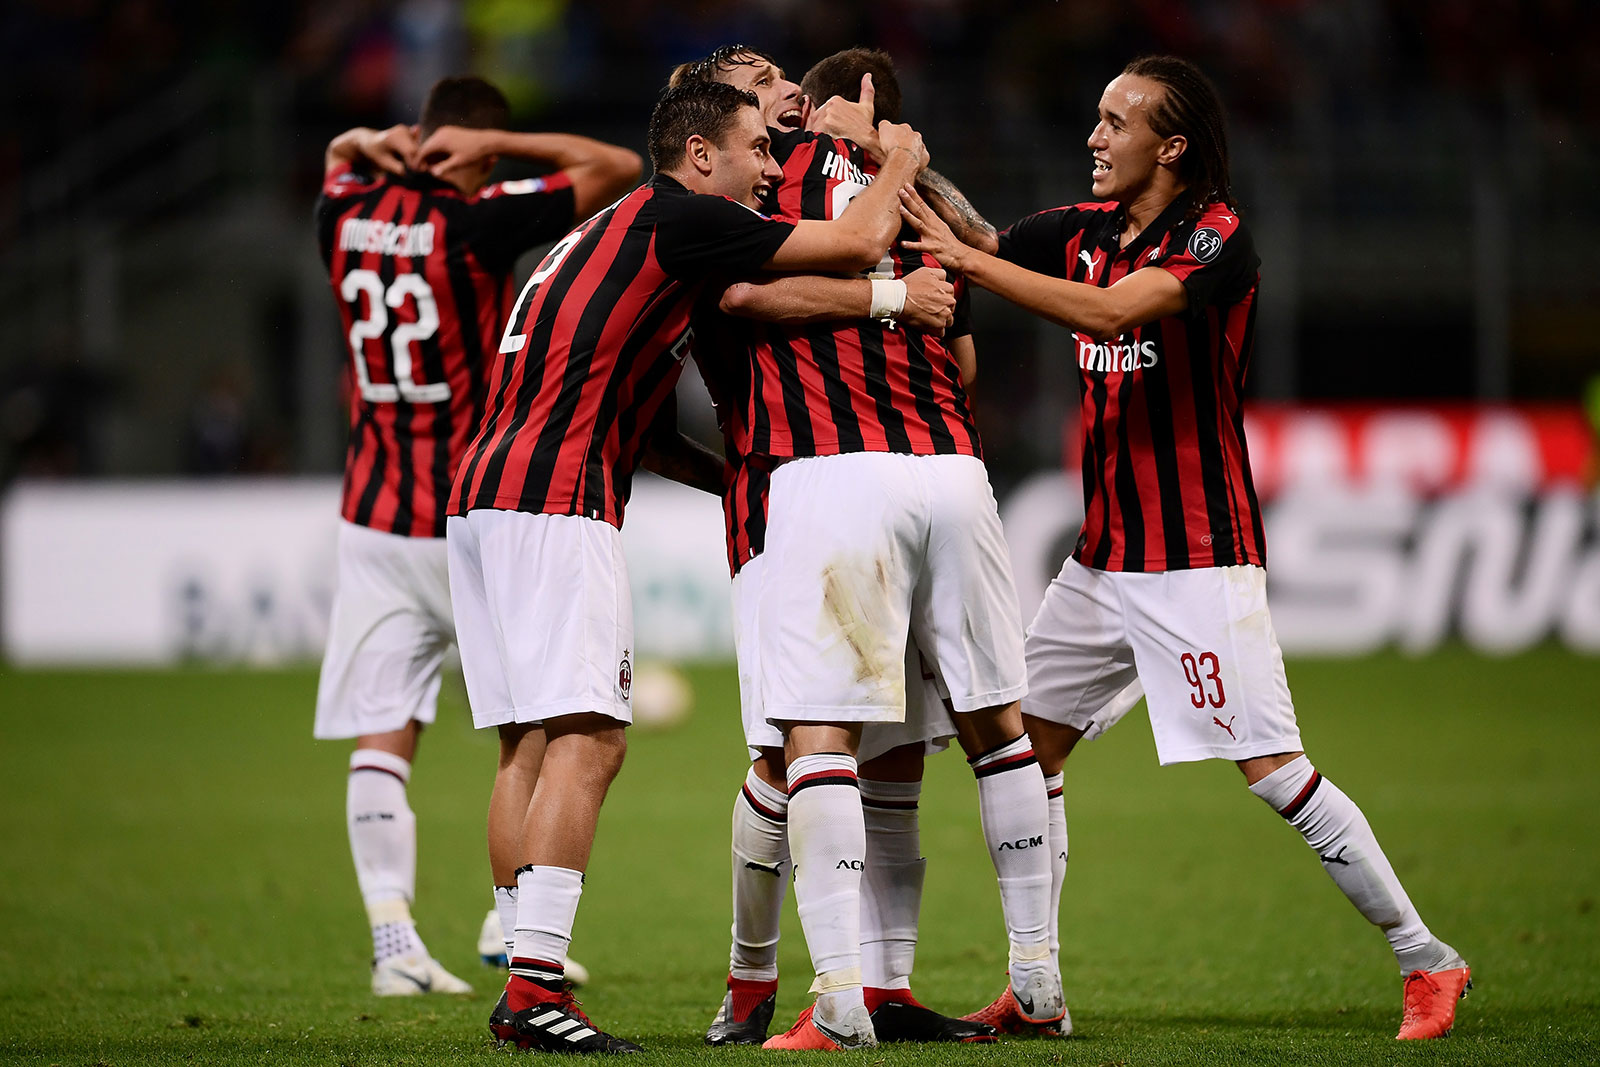 Davide Calabria, Lucas Biglia, Gonzalo Higuain and Diego Laxalt celebrating during Milan-Roma at Stadio San Siro on August 31, 2018. (MARCO BERTORELLO/AFP/Getty Images)